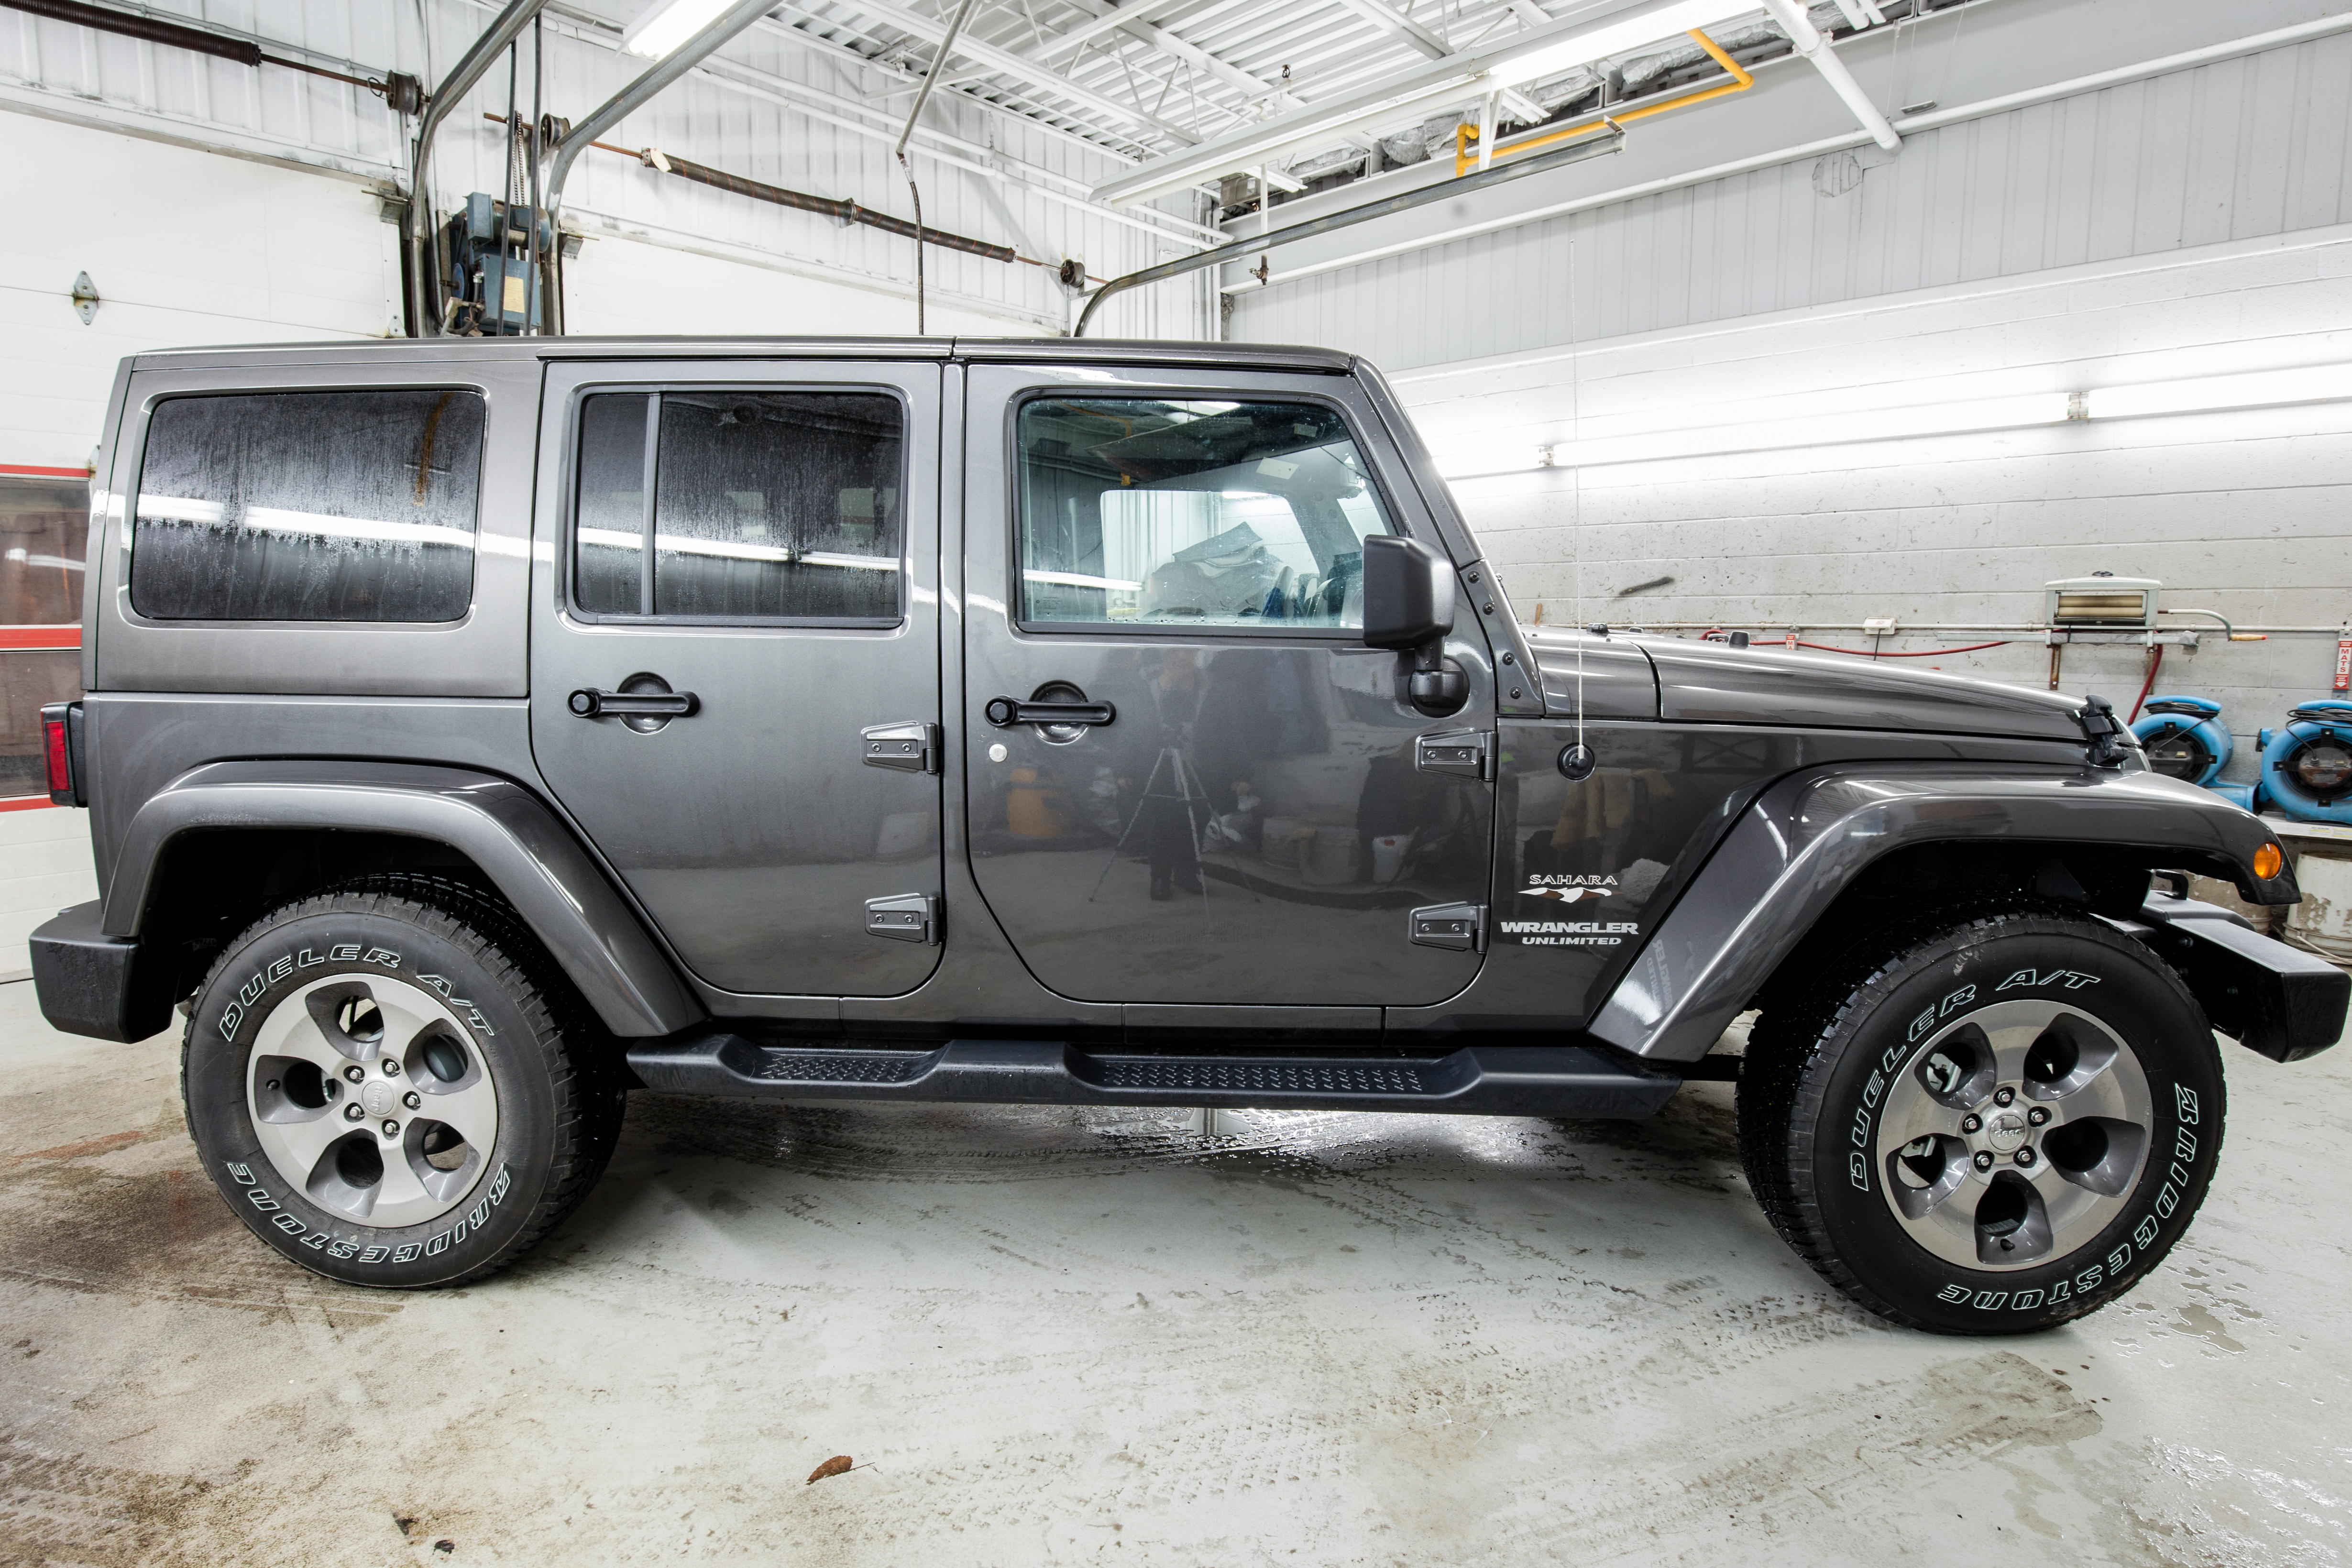 wrangler clear silver metallic groovecar research billet large edition jeep composite sport chief coat unlimited suv